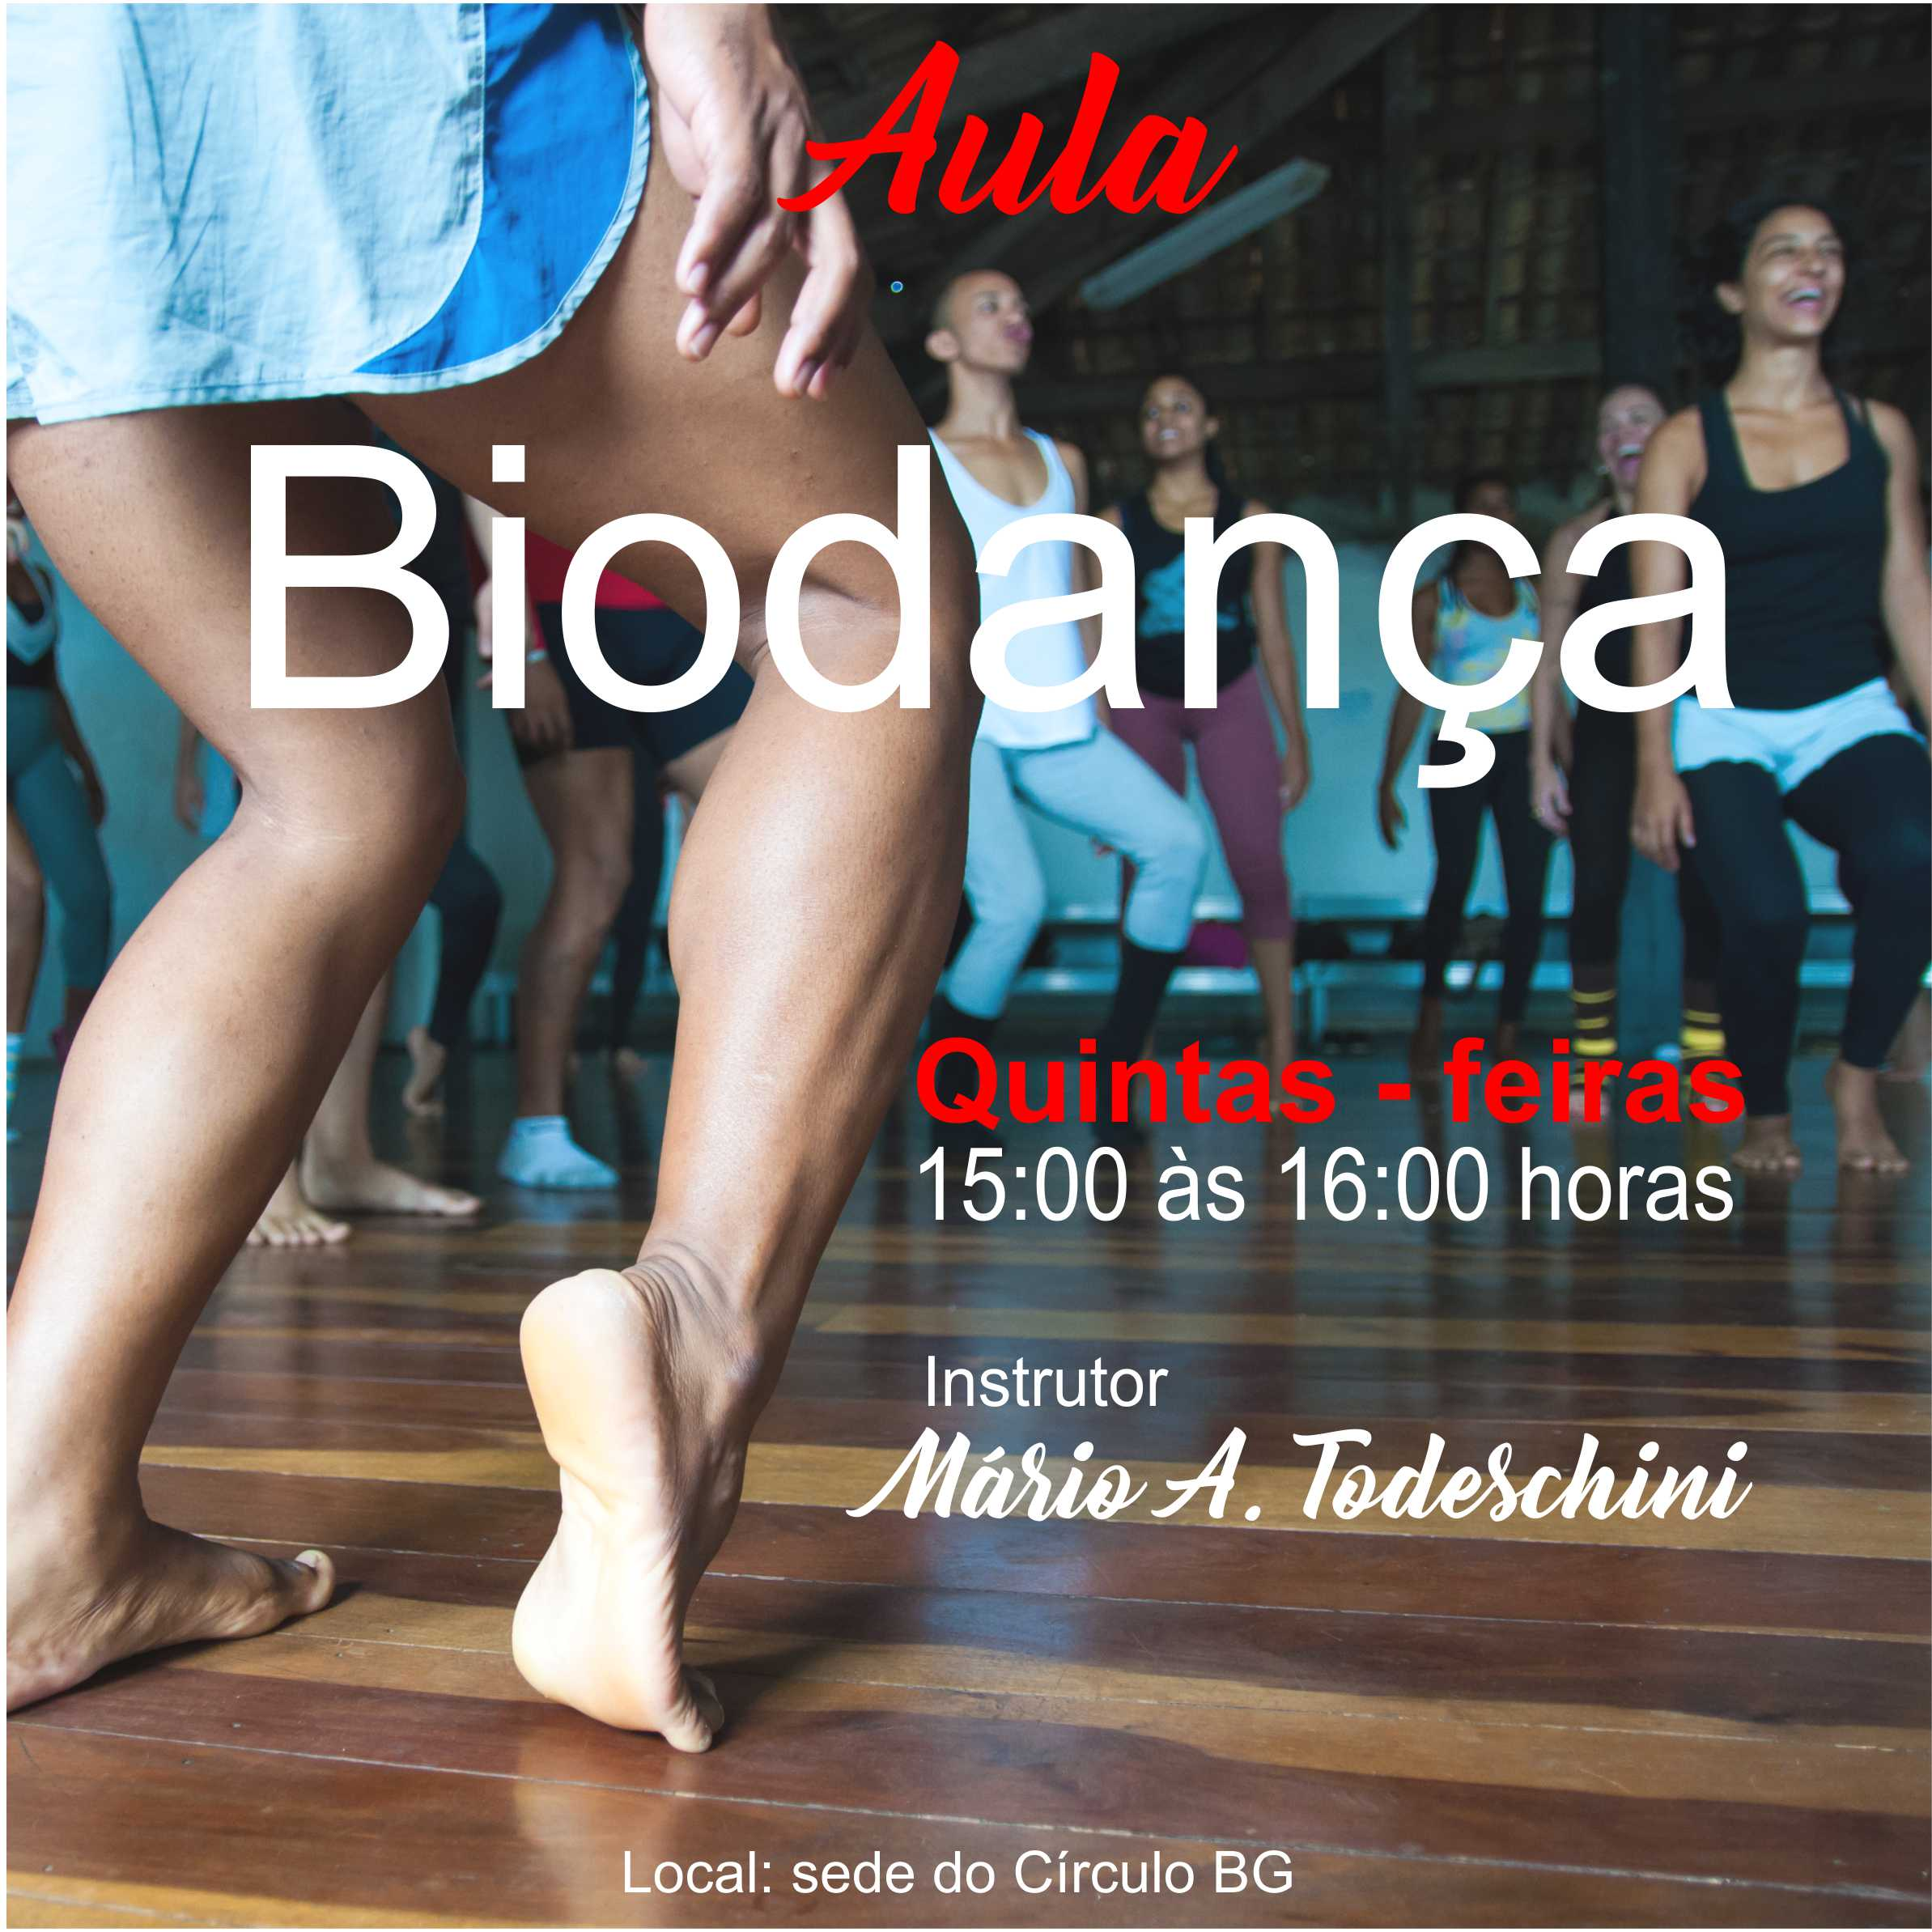 Flyer Biodanca